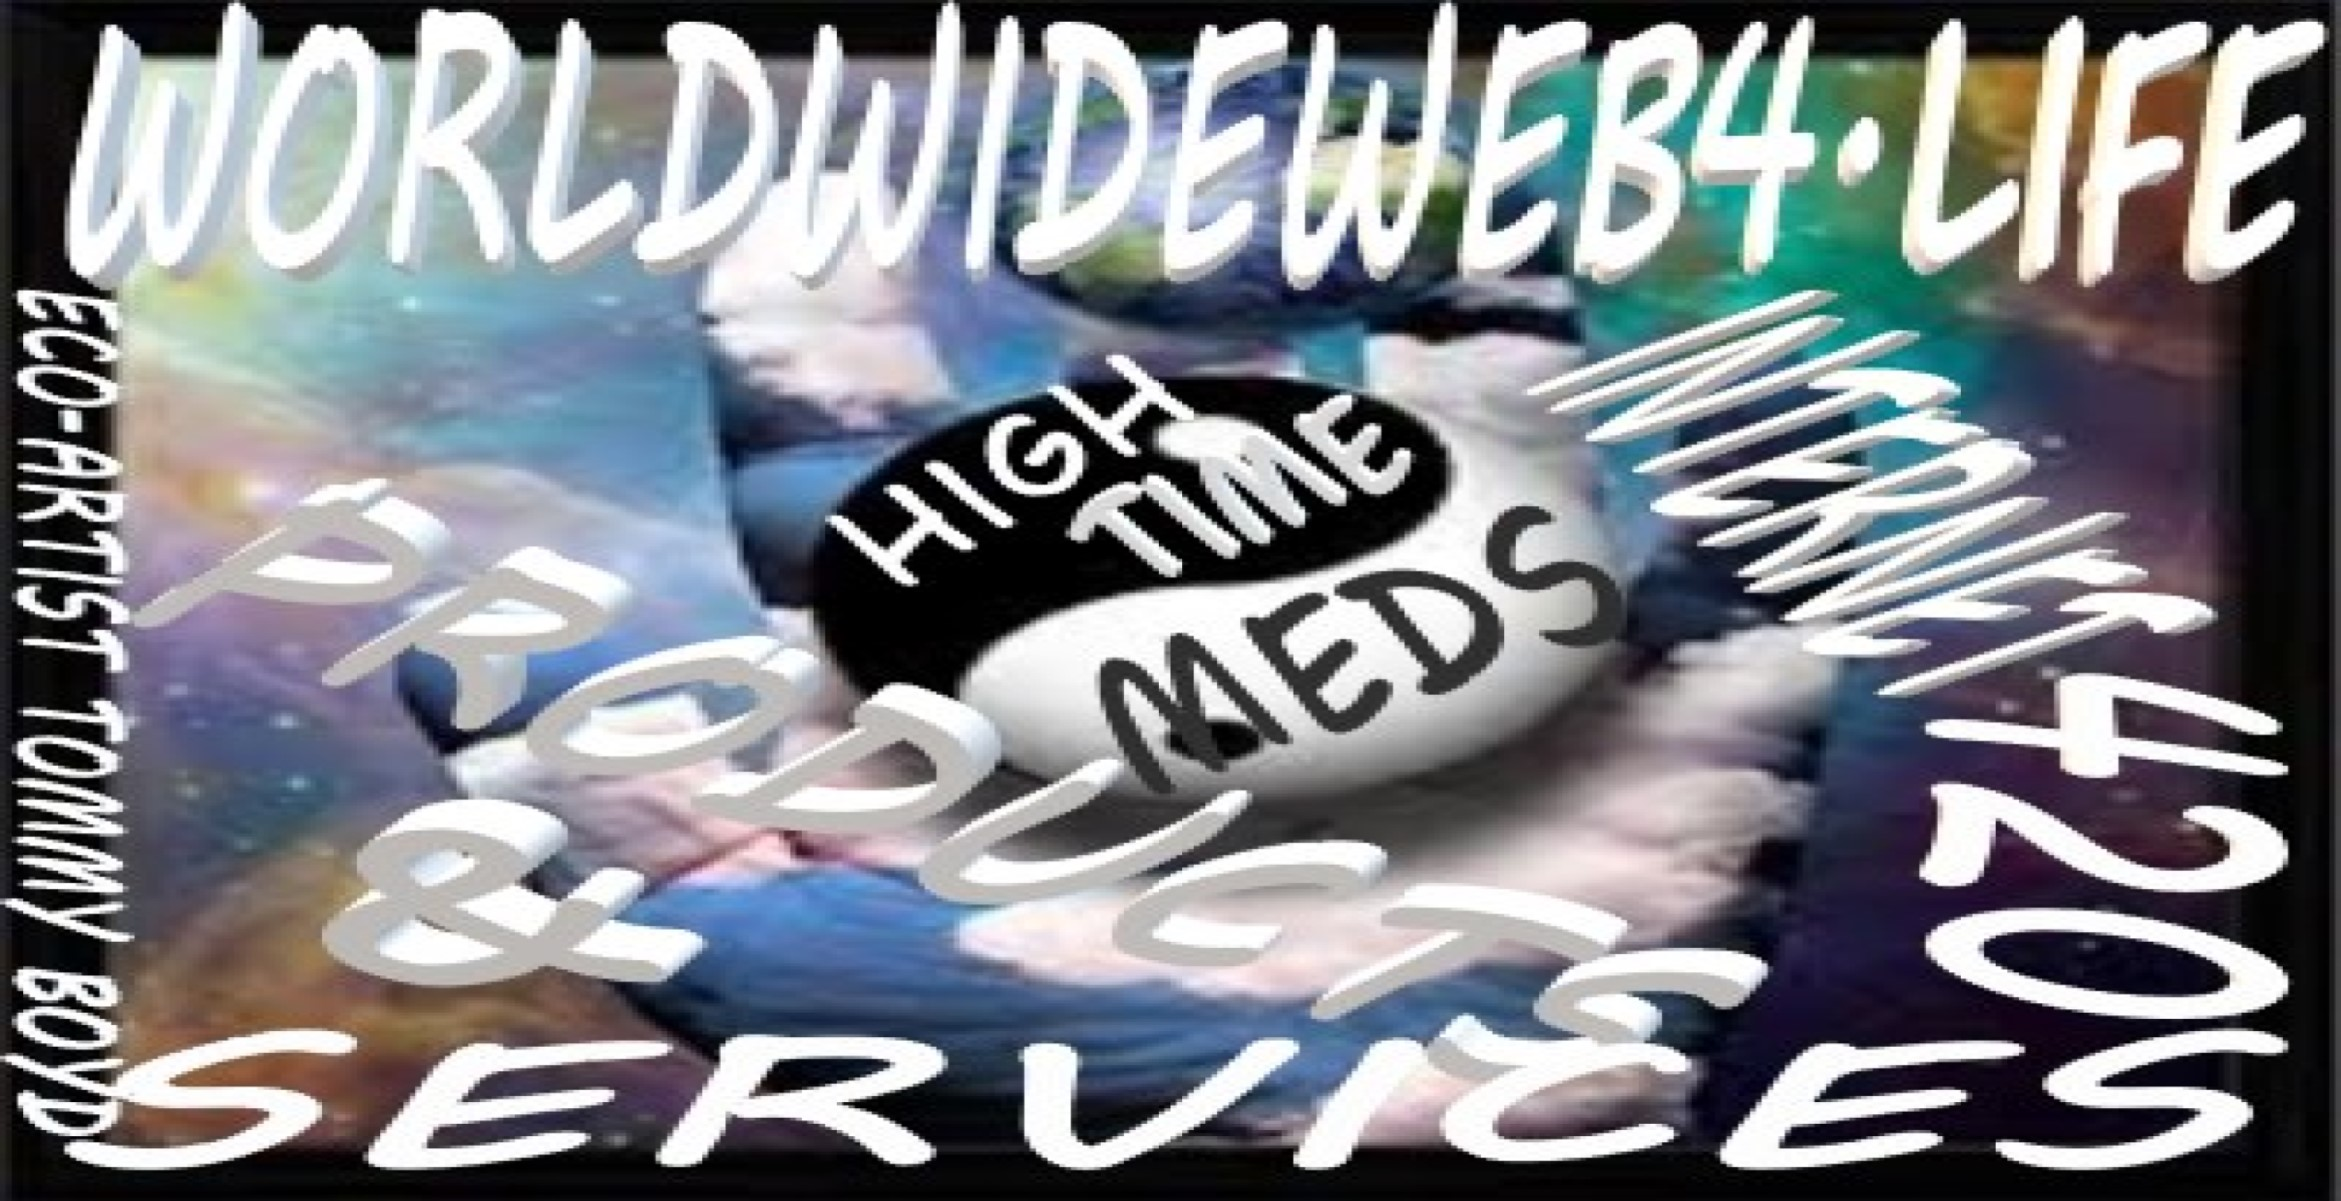 WORLD WIDE WEB 4 LIFE